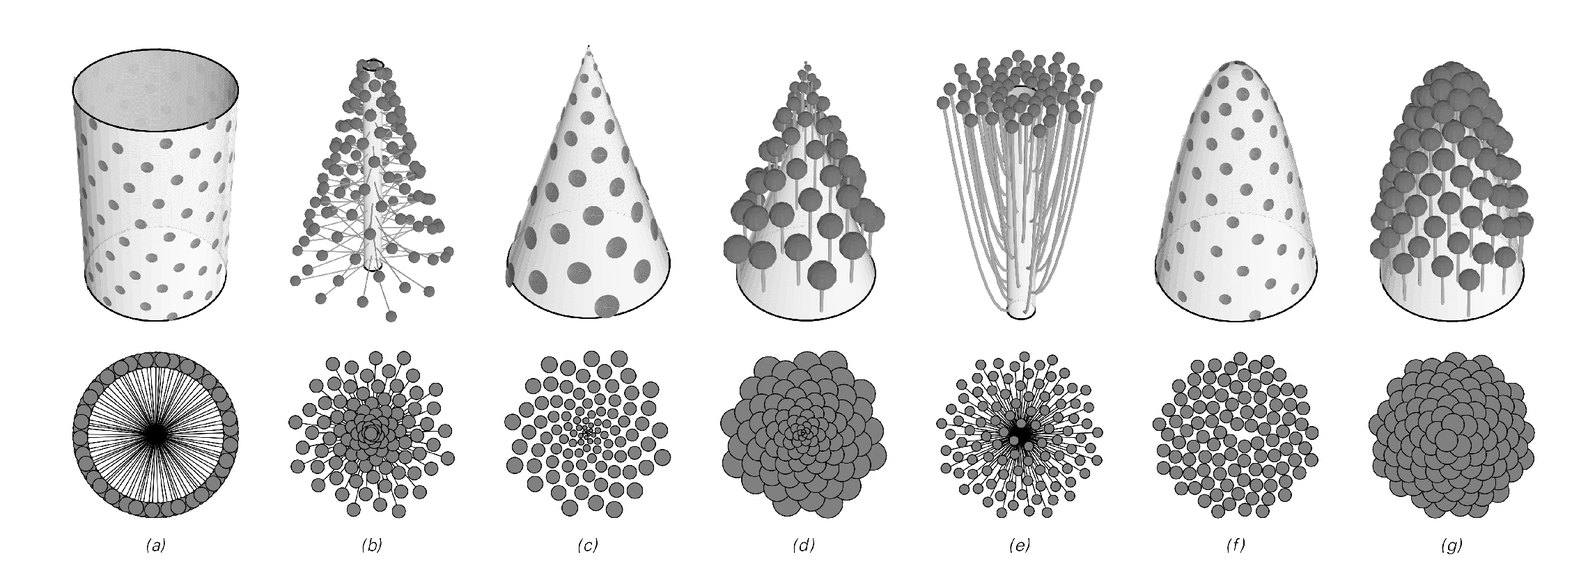 Examples of structures formed in various geometries by successively adding elements at a golden ration angle